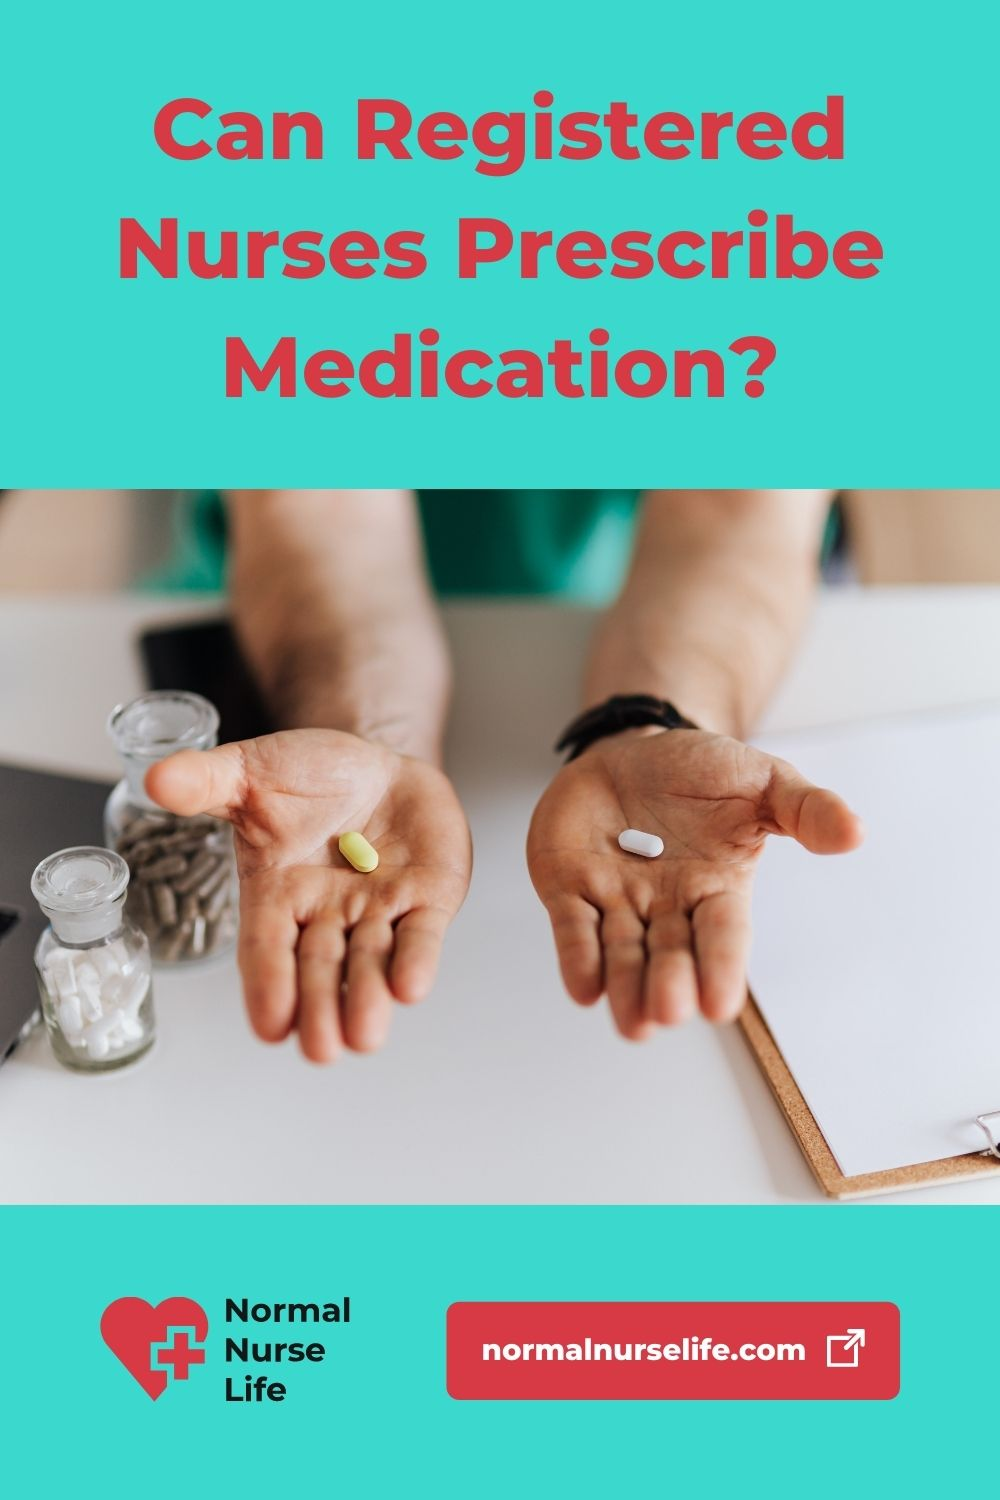 Can registered nurses prescribe medication or not